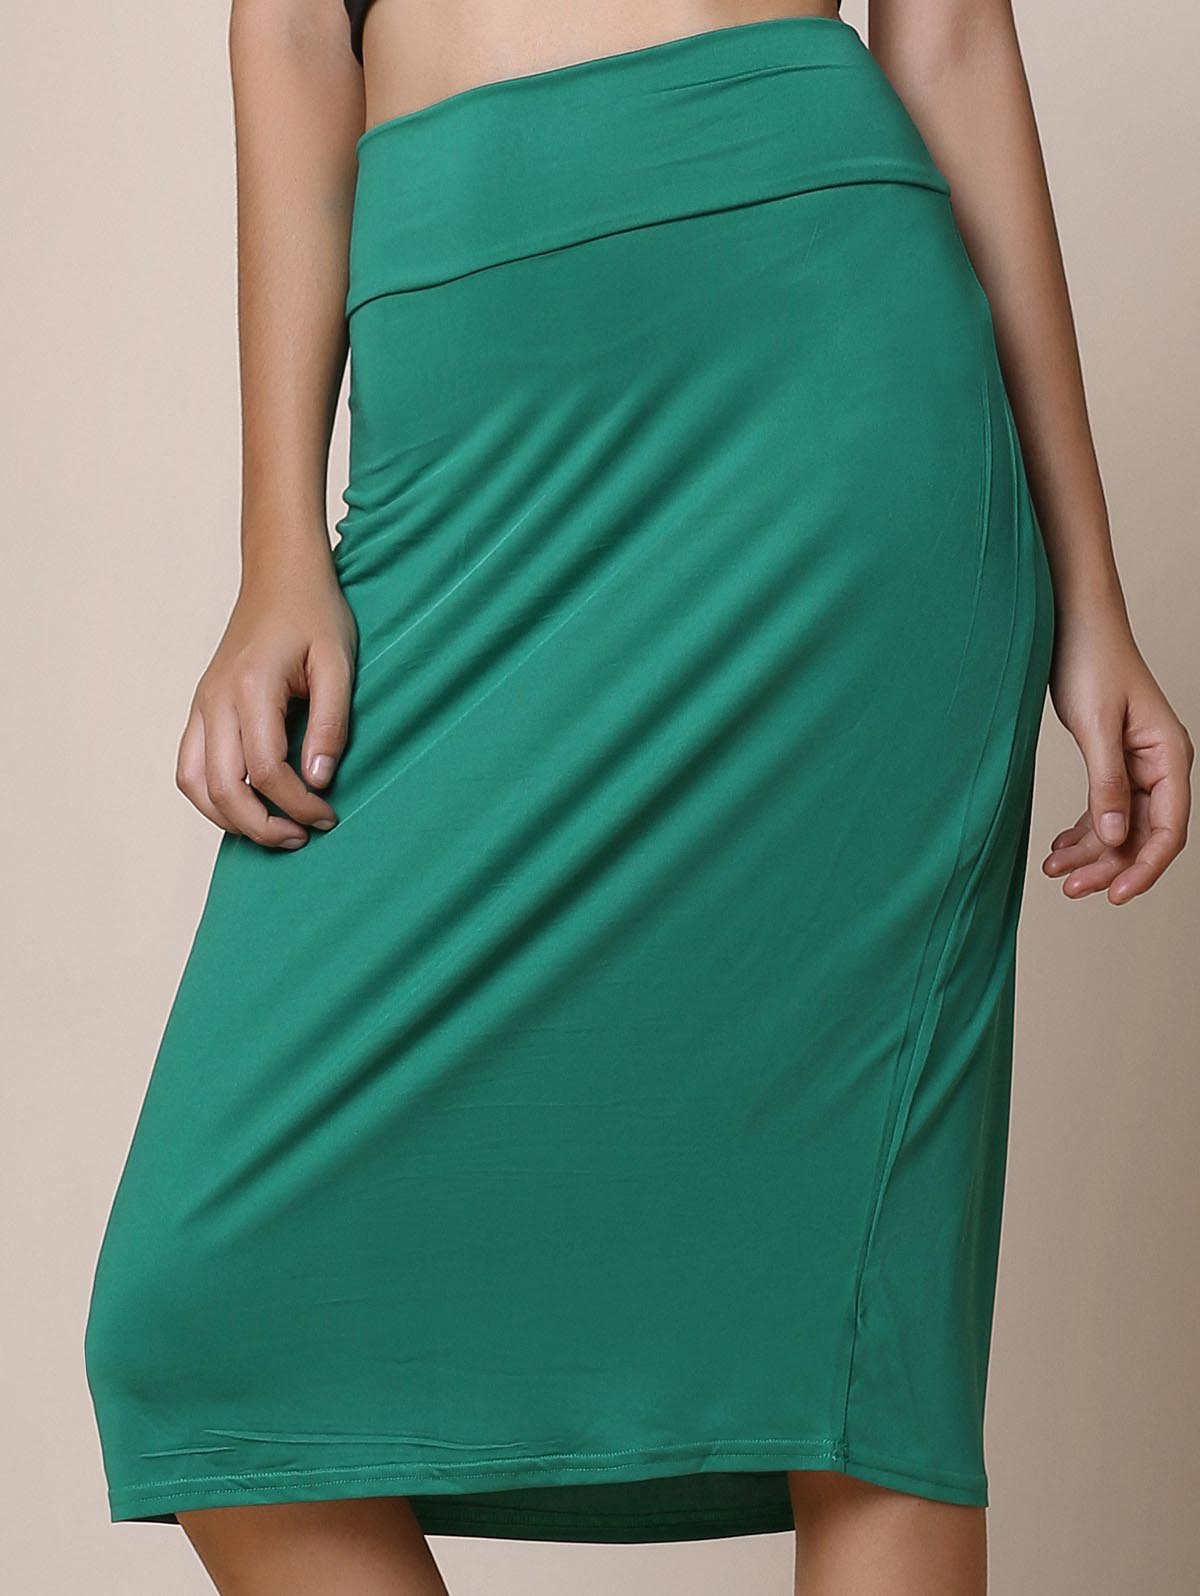 Work Style Solid Color High-Waisted Women's Midi Skirt